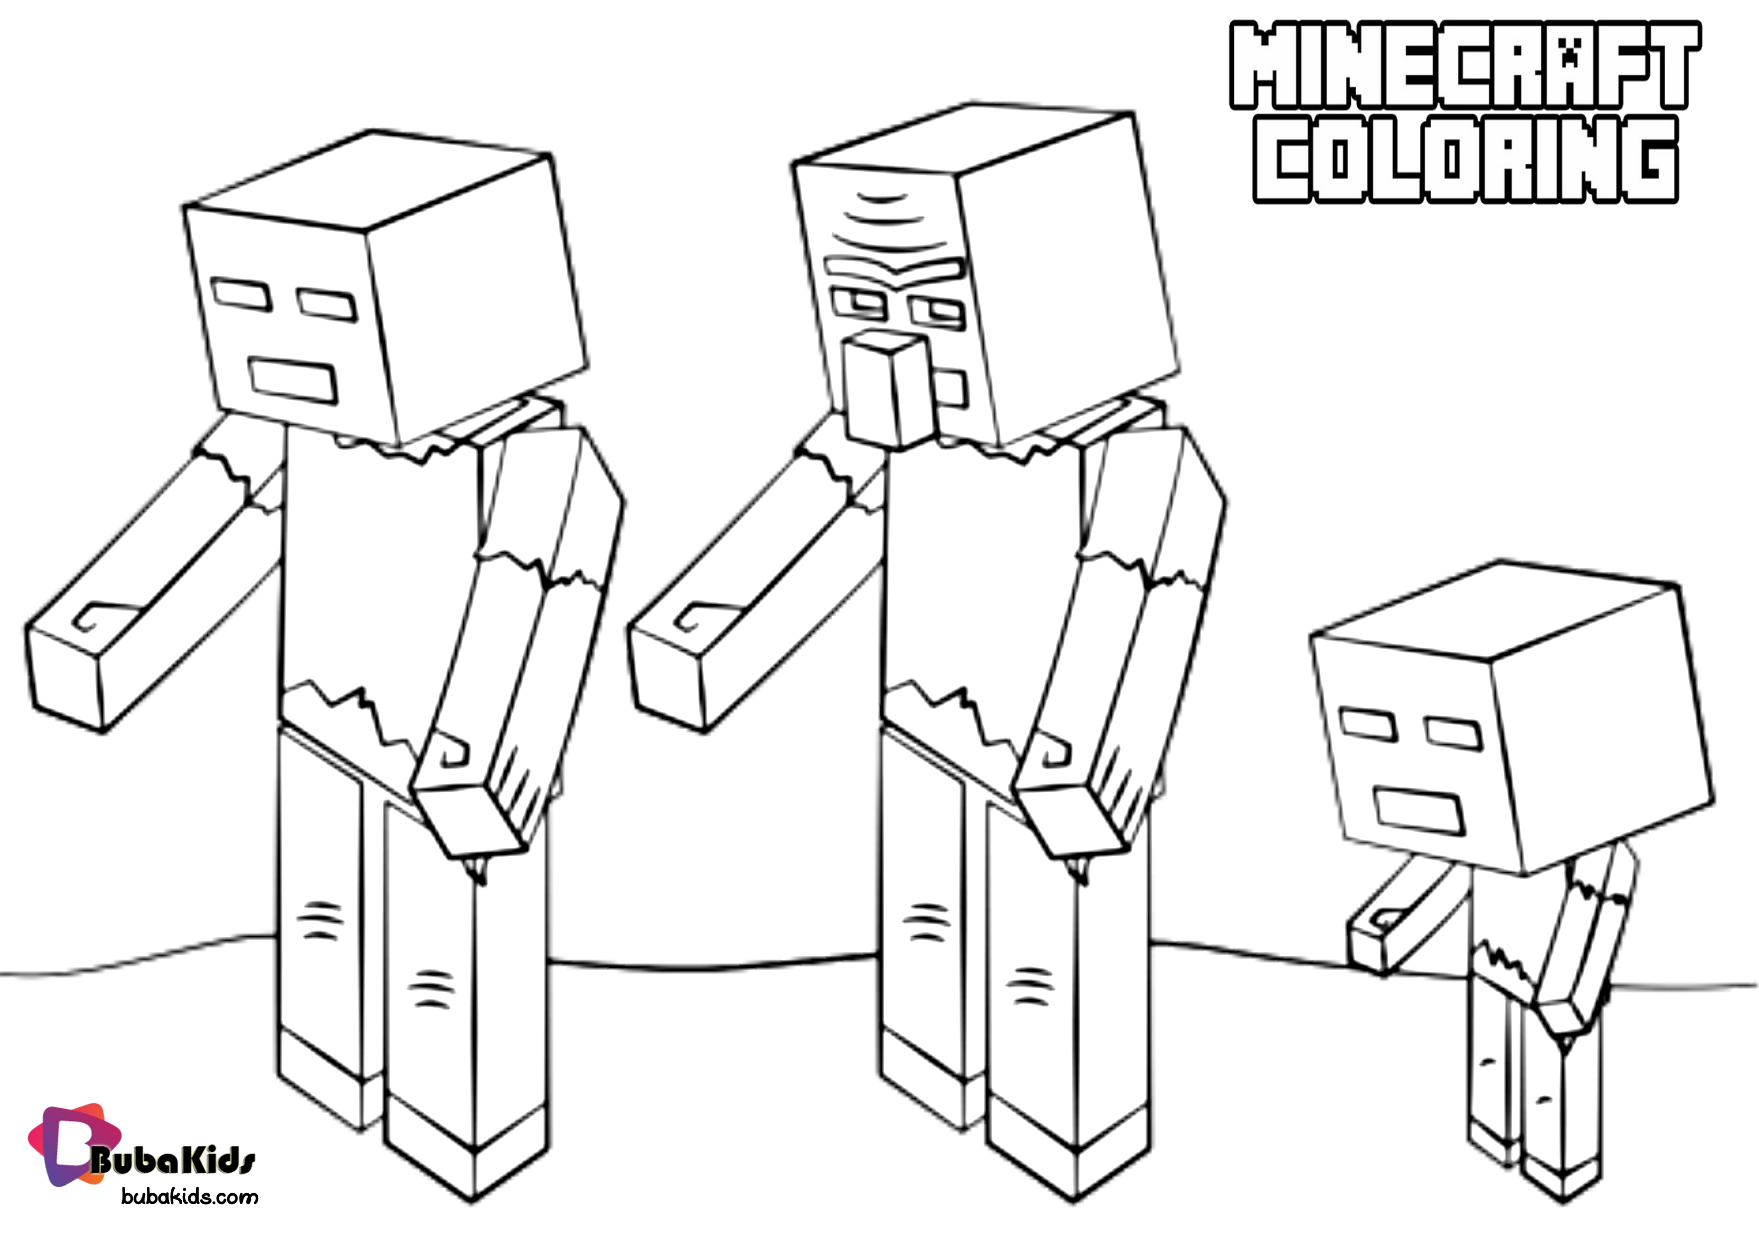 Minecraft Coloring Zombies Coloring Page Collection Of Cartoon Coloring Pages For Teenage Printable That You Can Download And Print Coloring Pages Minecr Warna